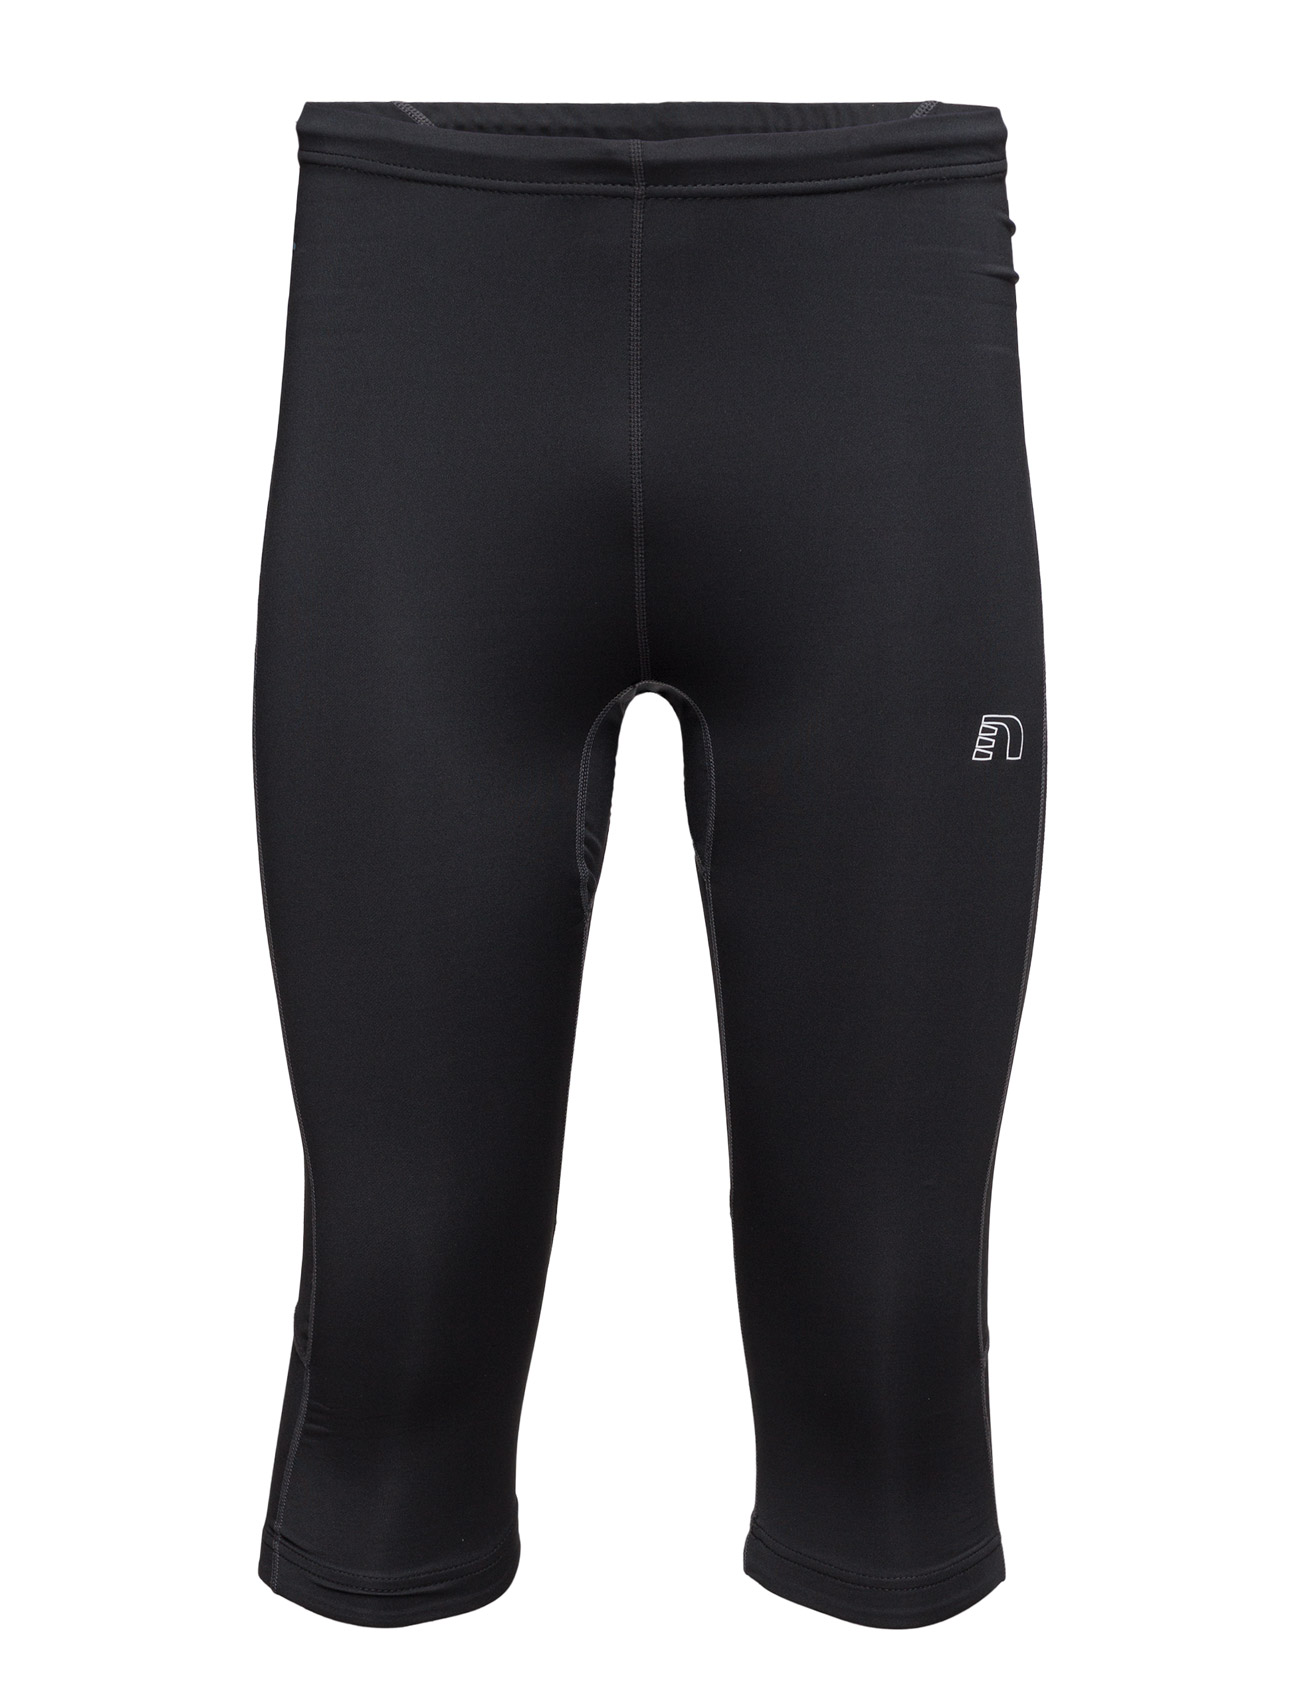 Base Dry N Comfort Knee Tights Newline Løbe tights til Mænd i Sort